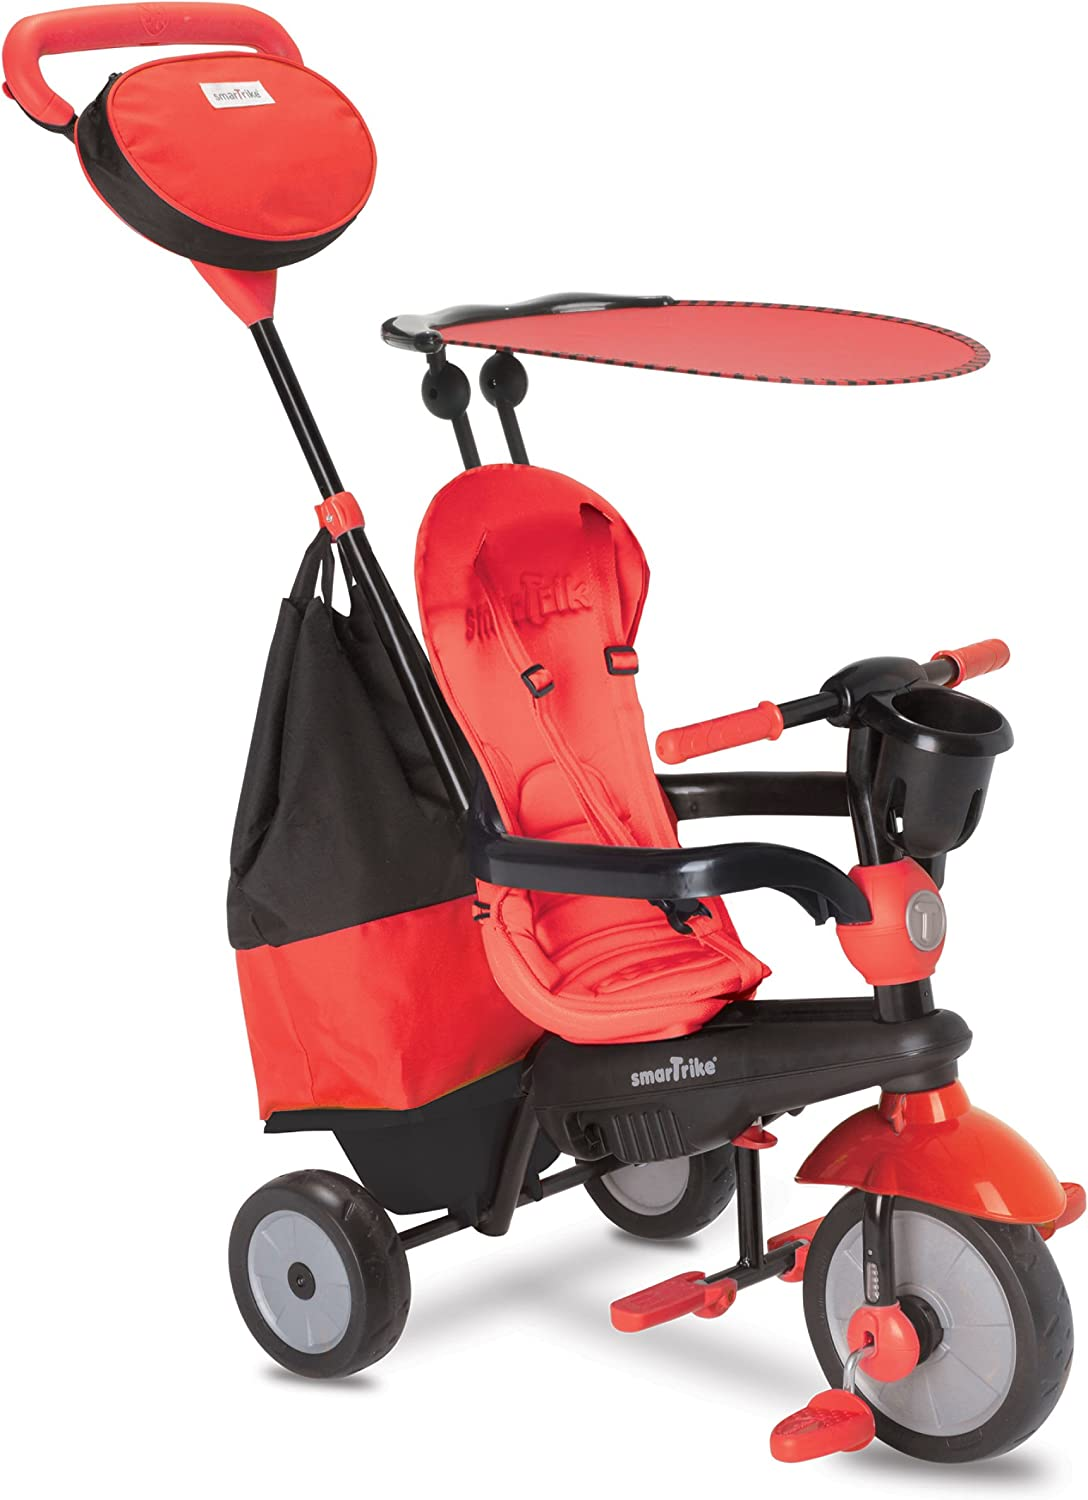 SmarTrike 4in1 Cruise Tricycle, Red